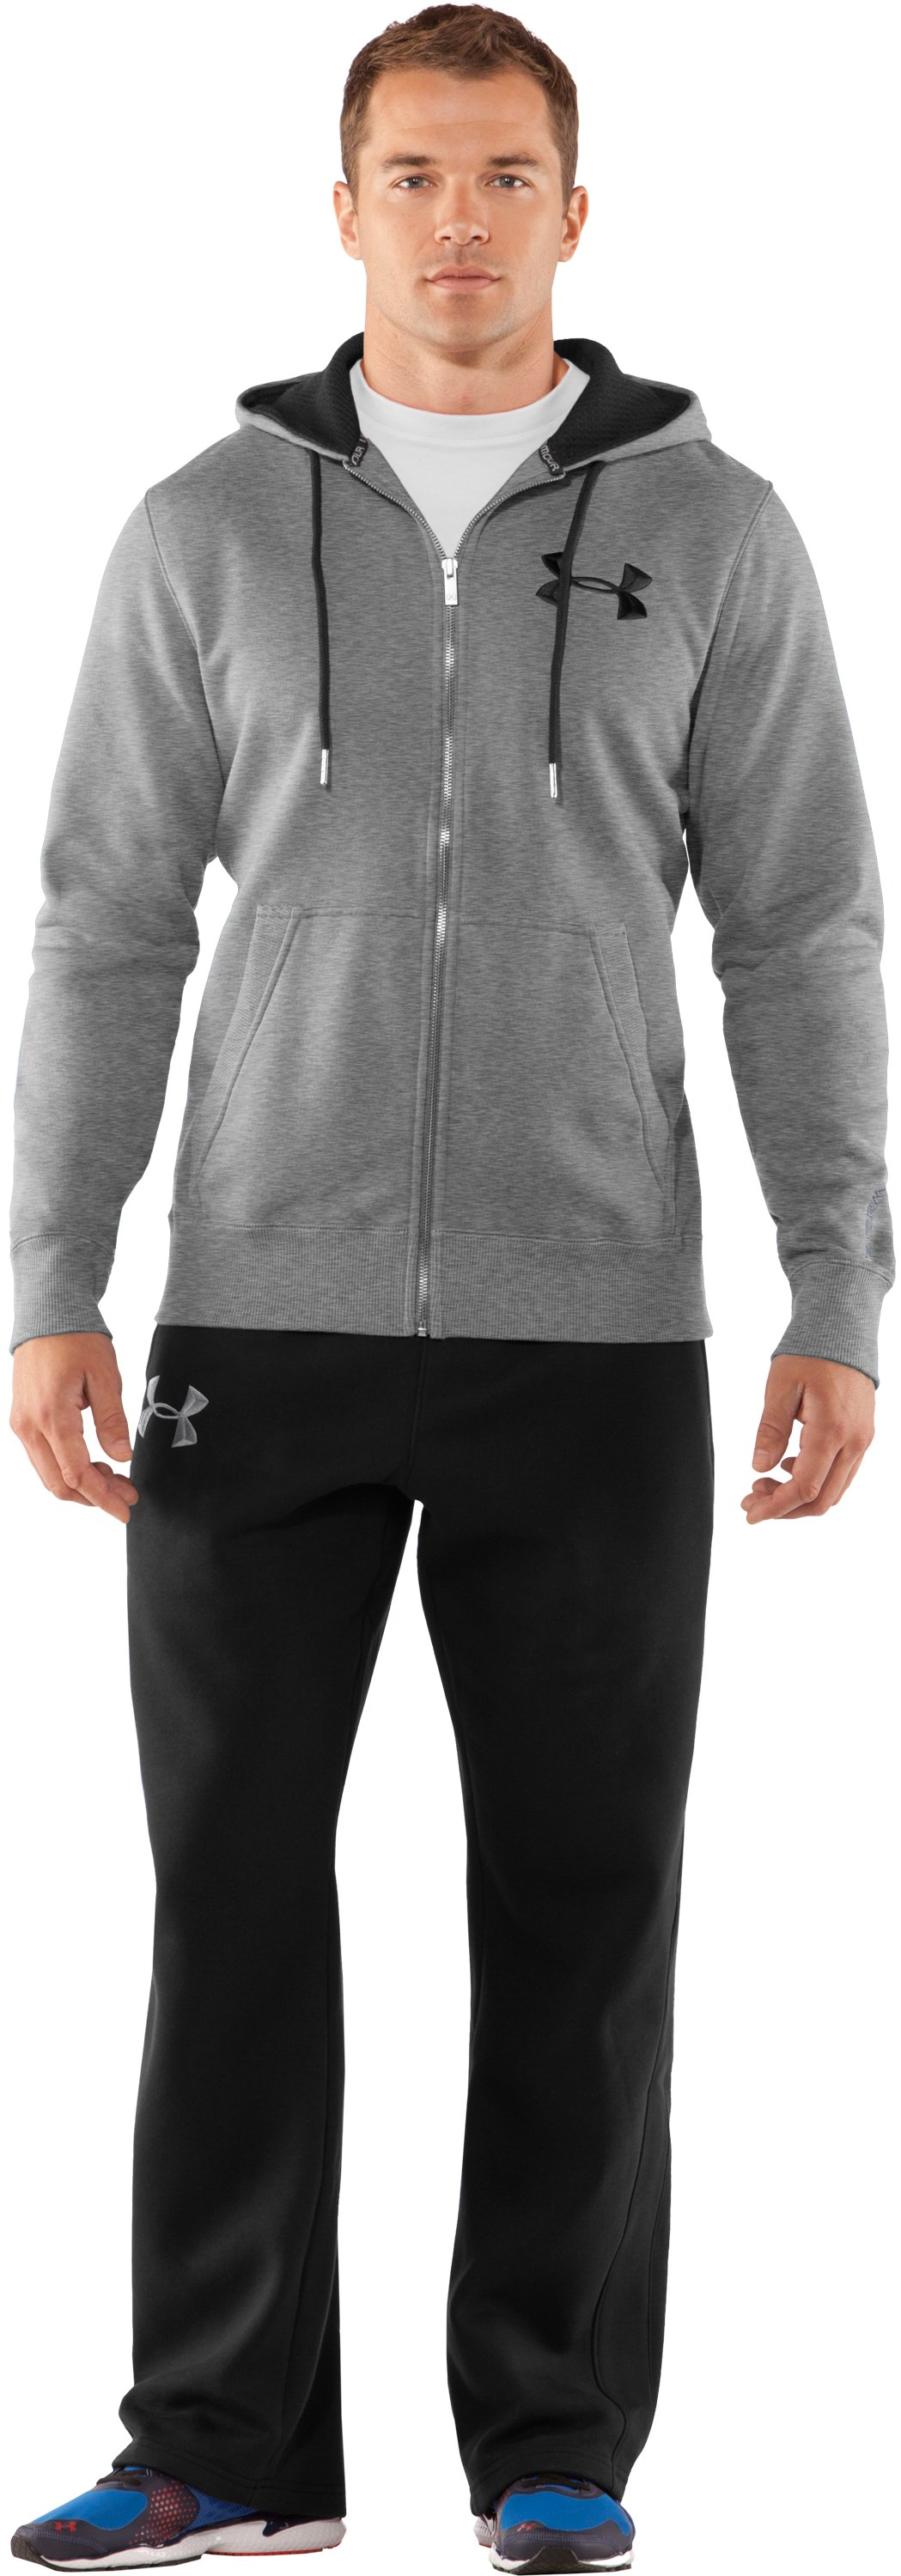 Men's Charged Cotton® Storm Full Zip Hoodie, True Gray Heather, Front